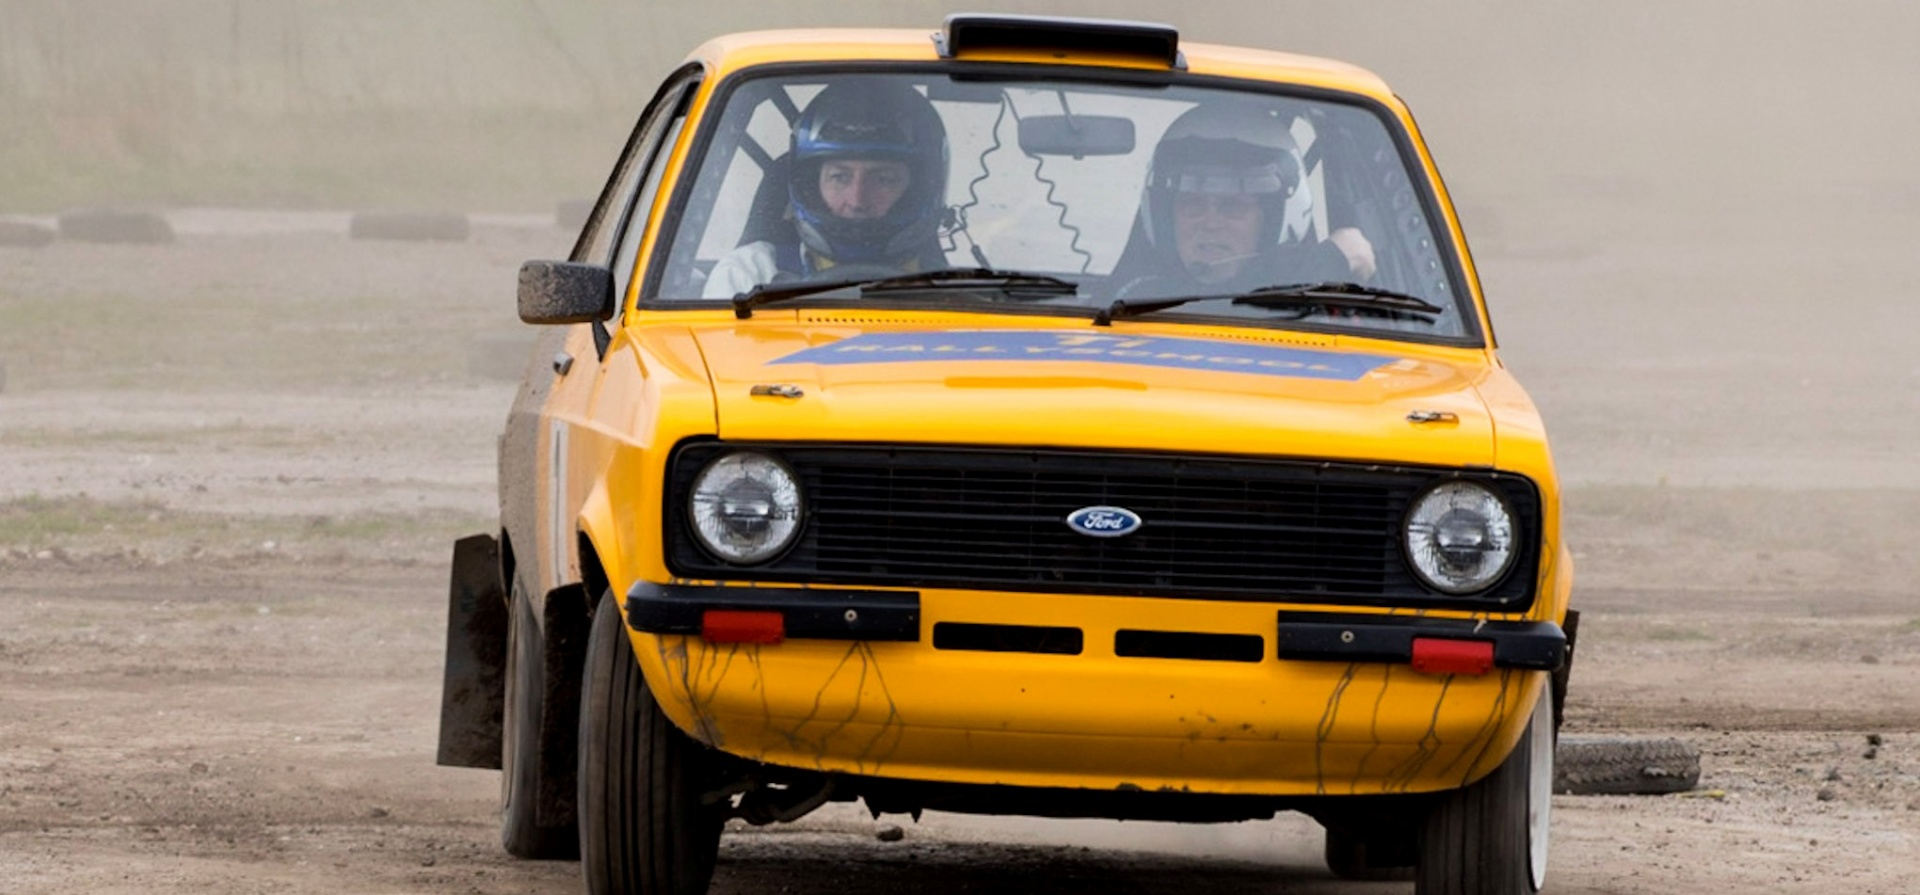 Full Day Rally Driving Introductory Experience in Yorkshire-10